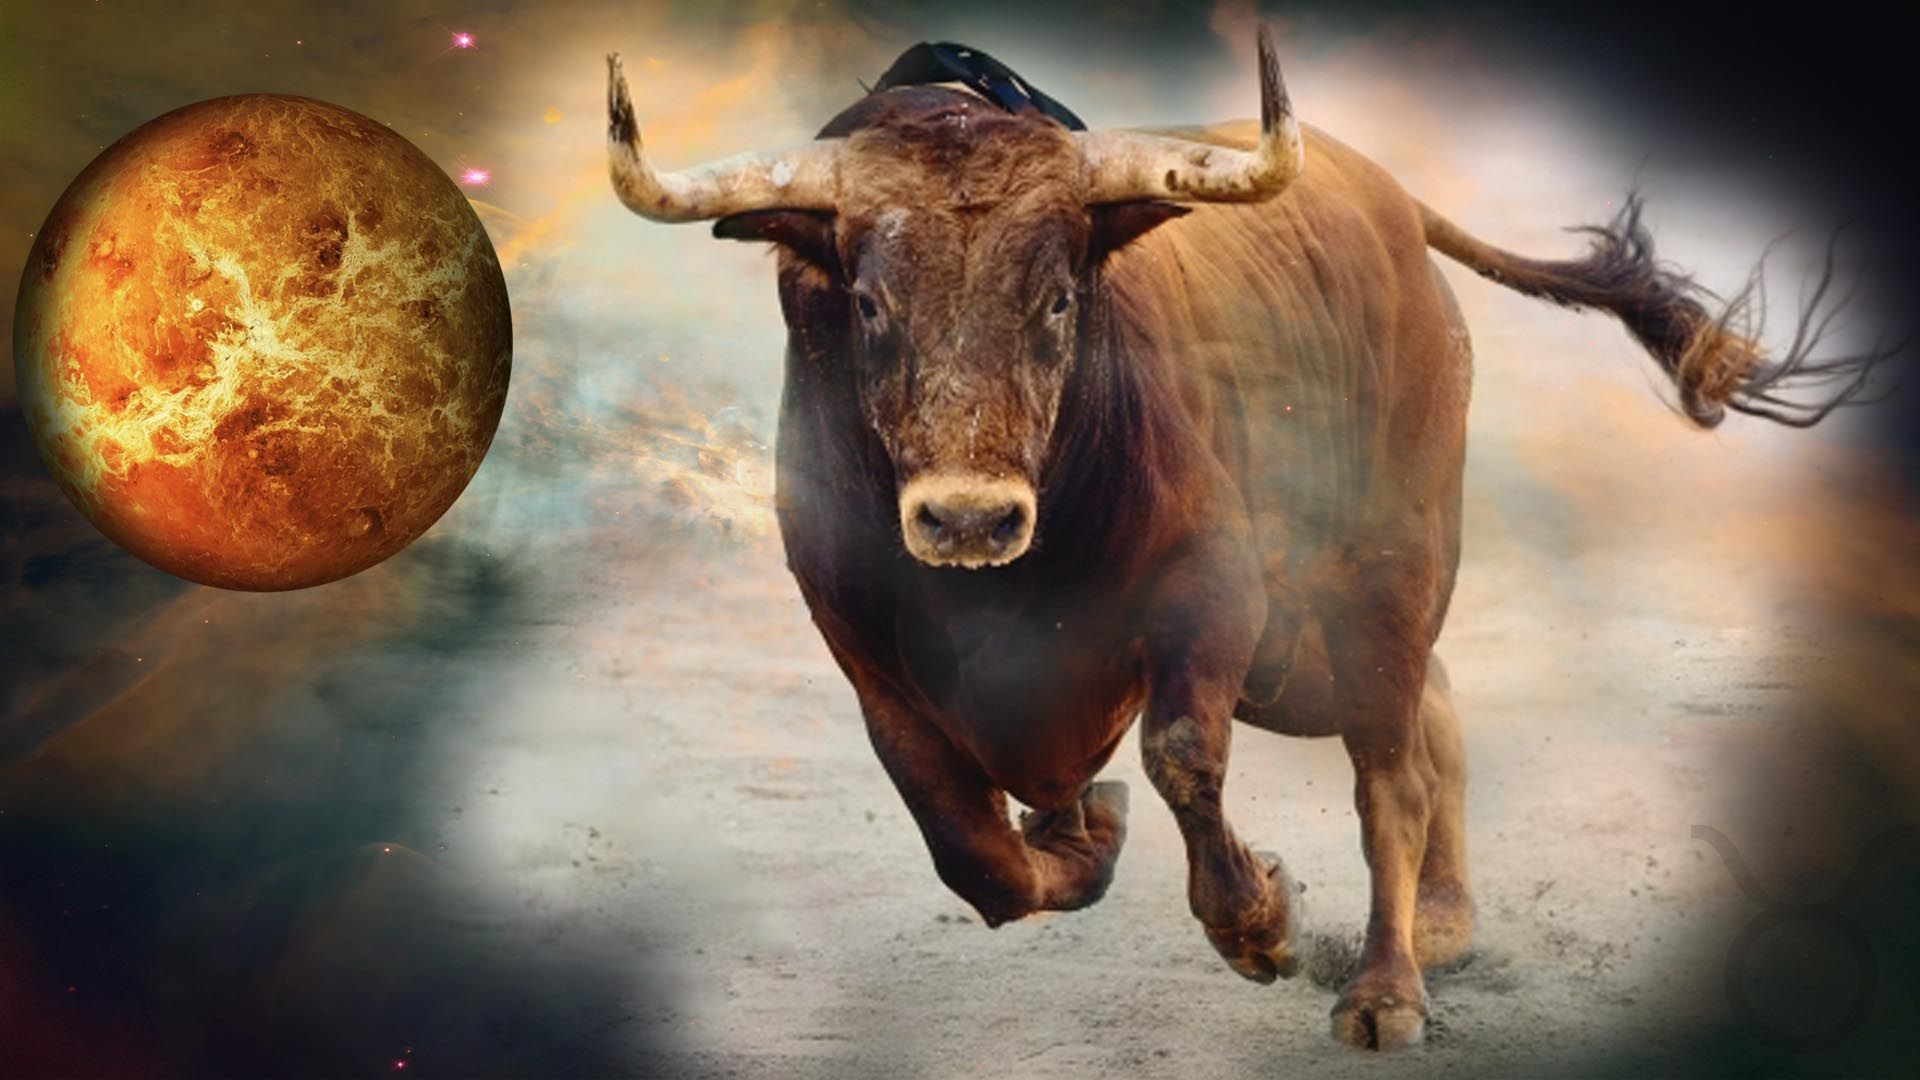 TAURUS Weekly Horoscope (March 22-28): Astrological Prediction for Love, Money & Finance, Career and Health